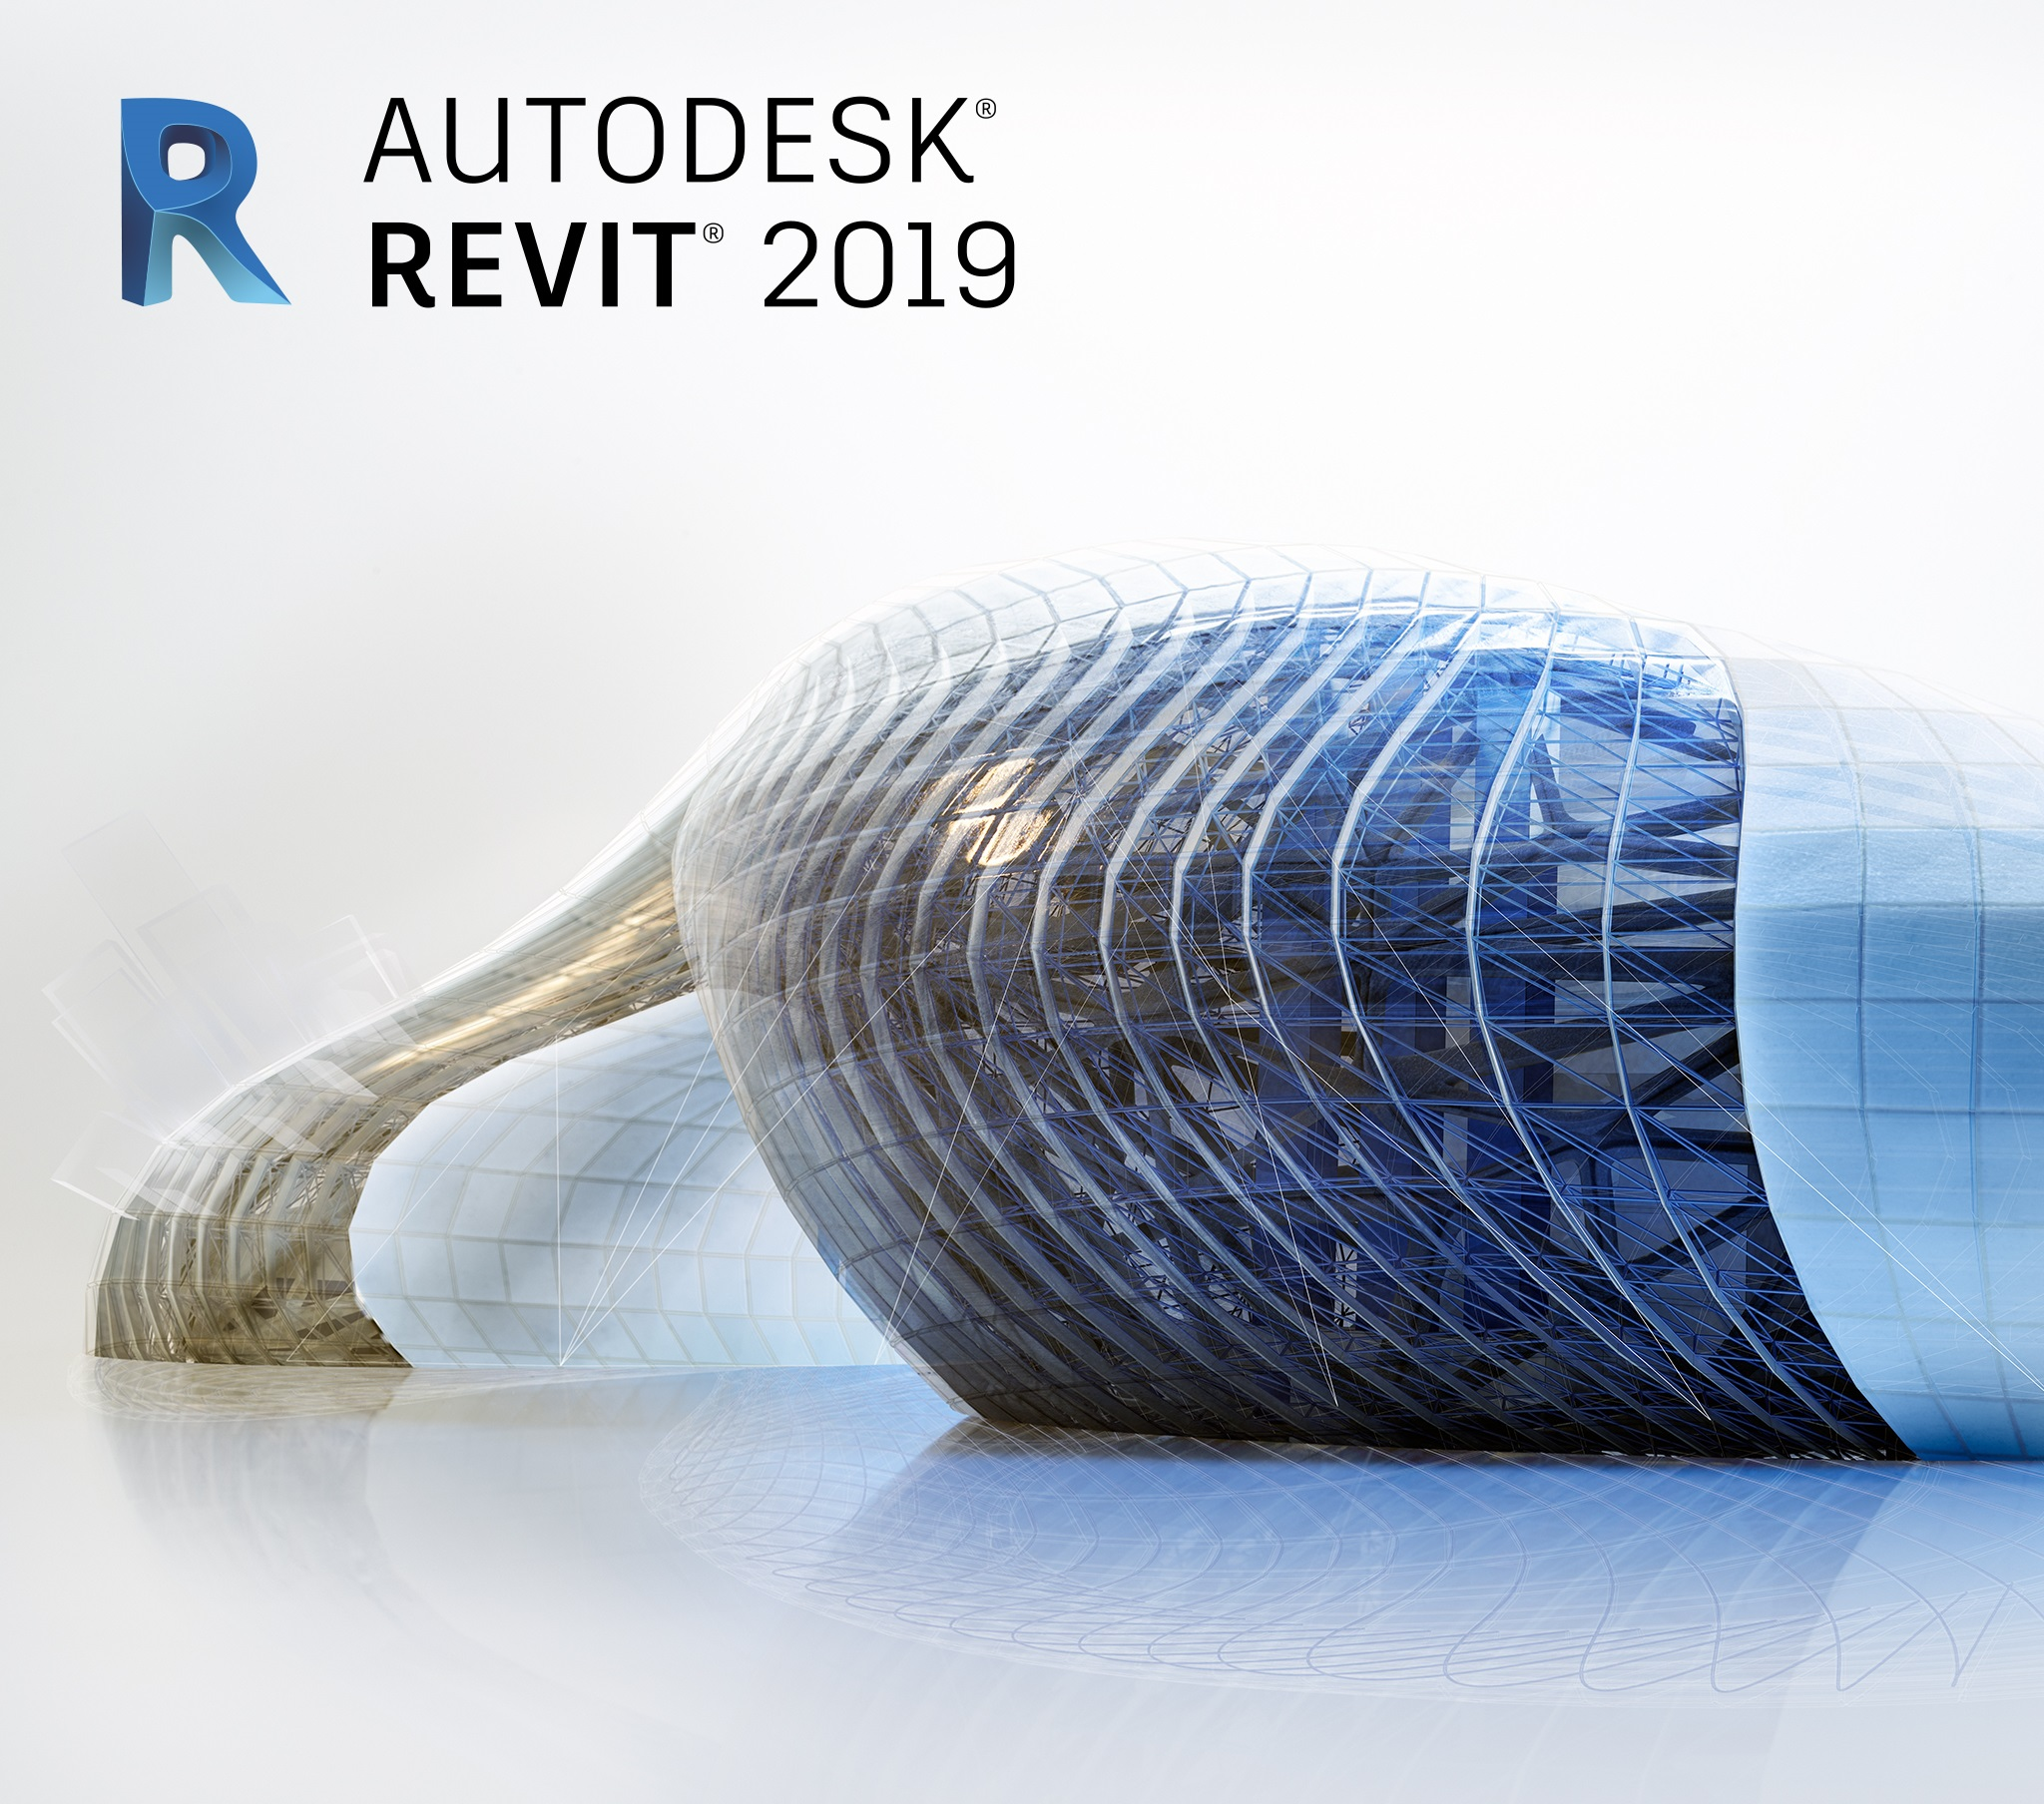 Autodesk Revit 2019 Free Download